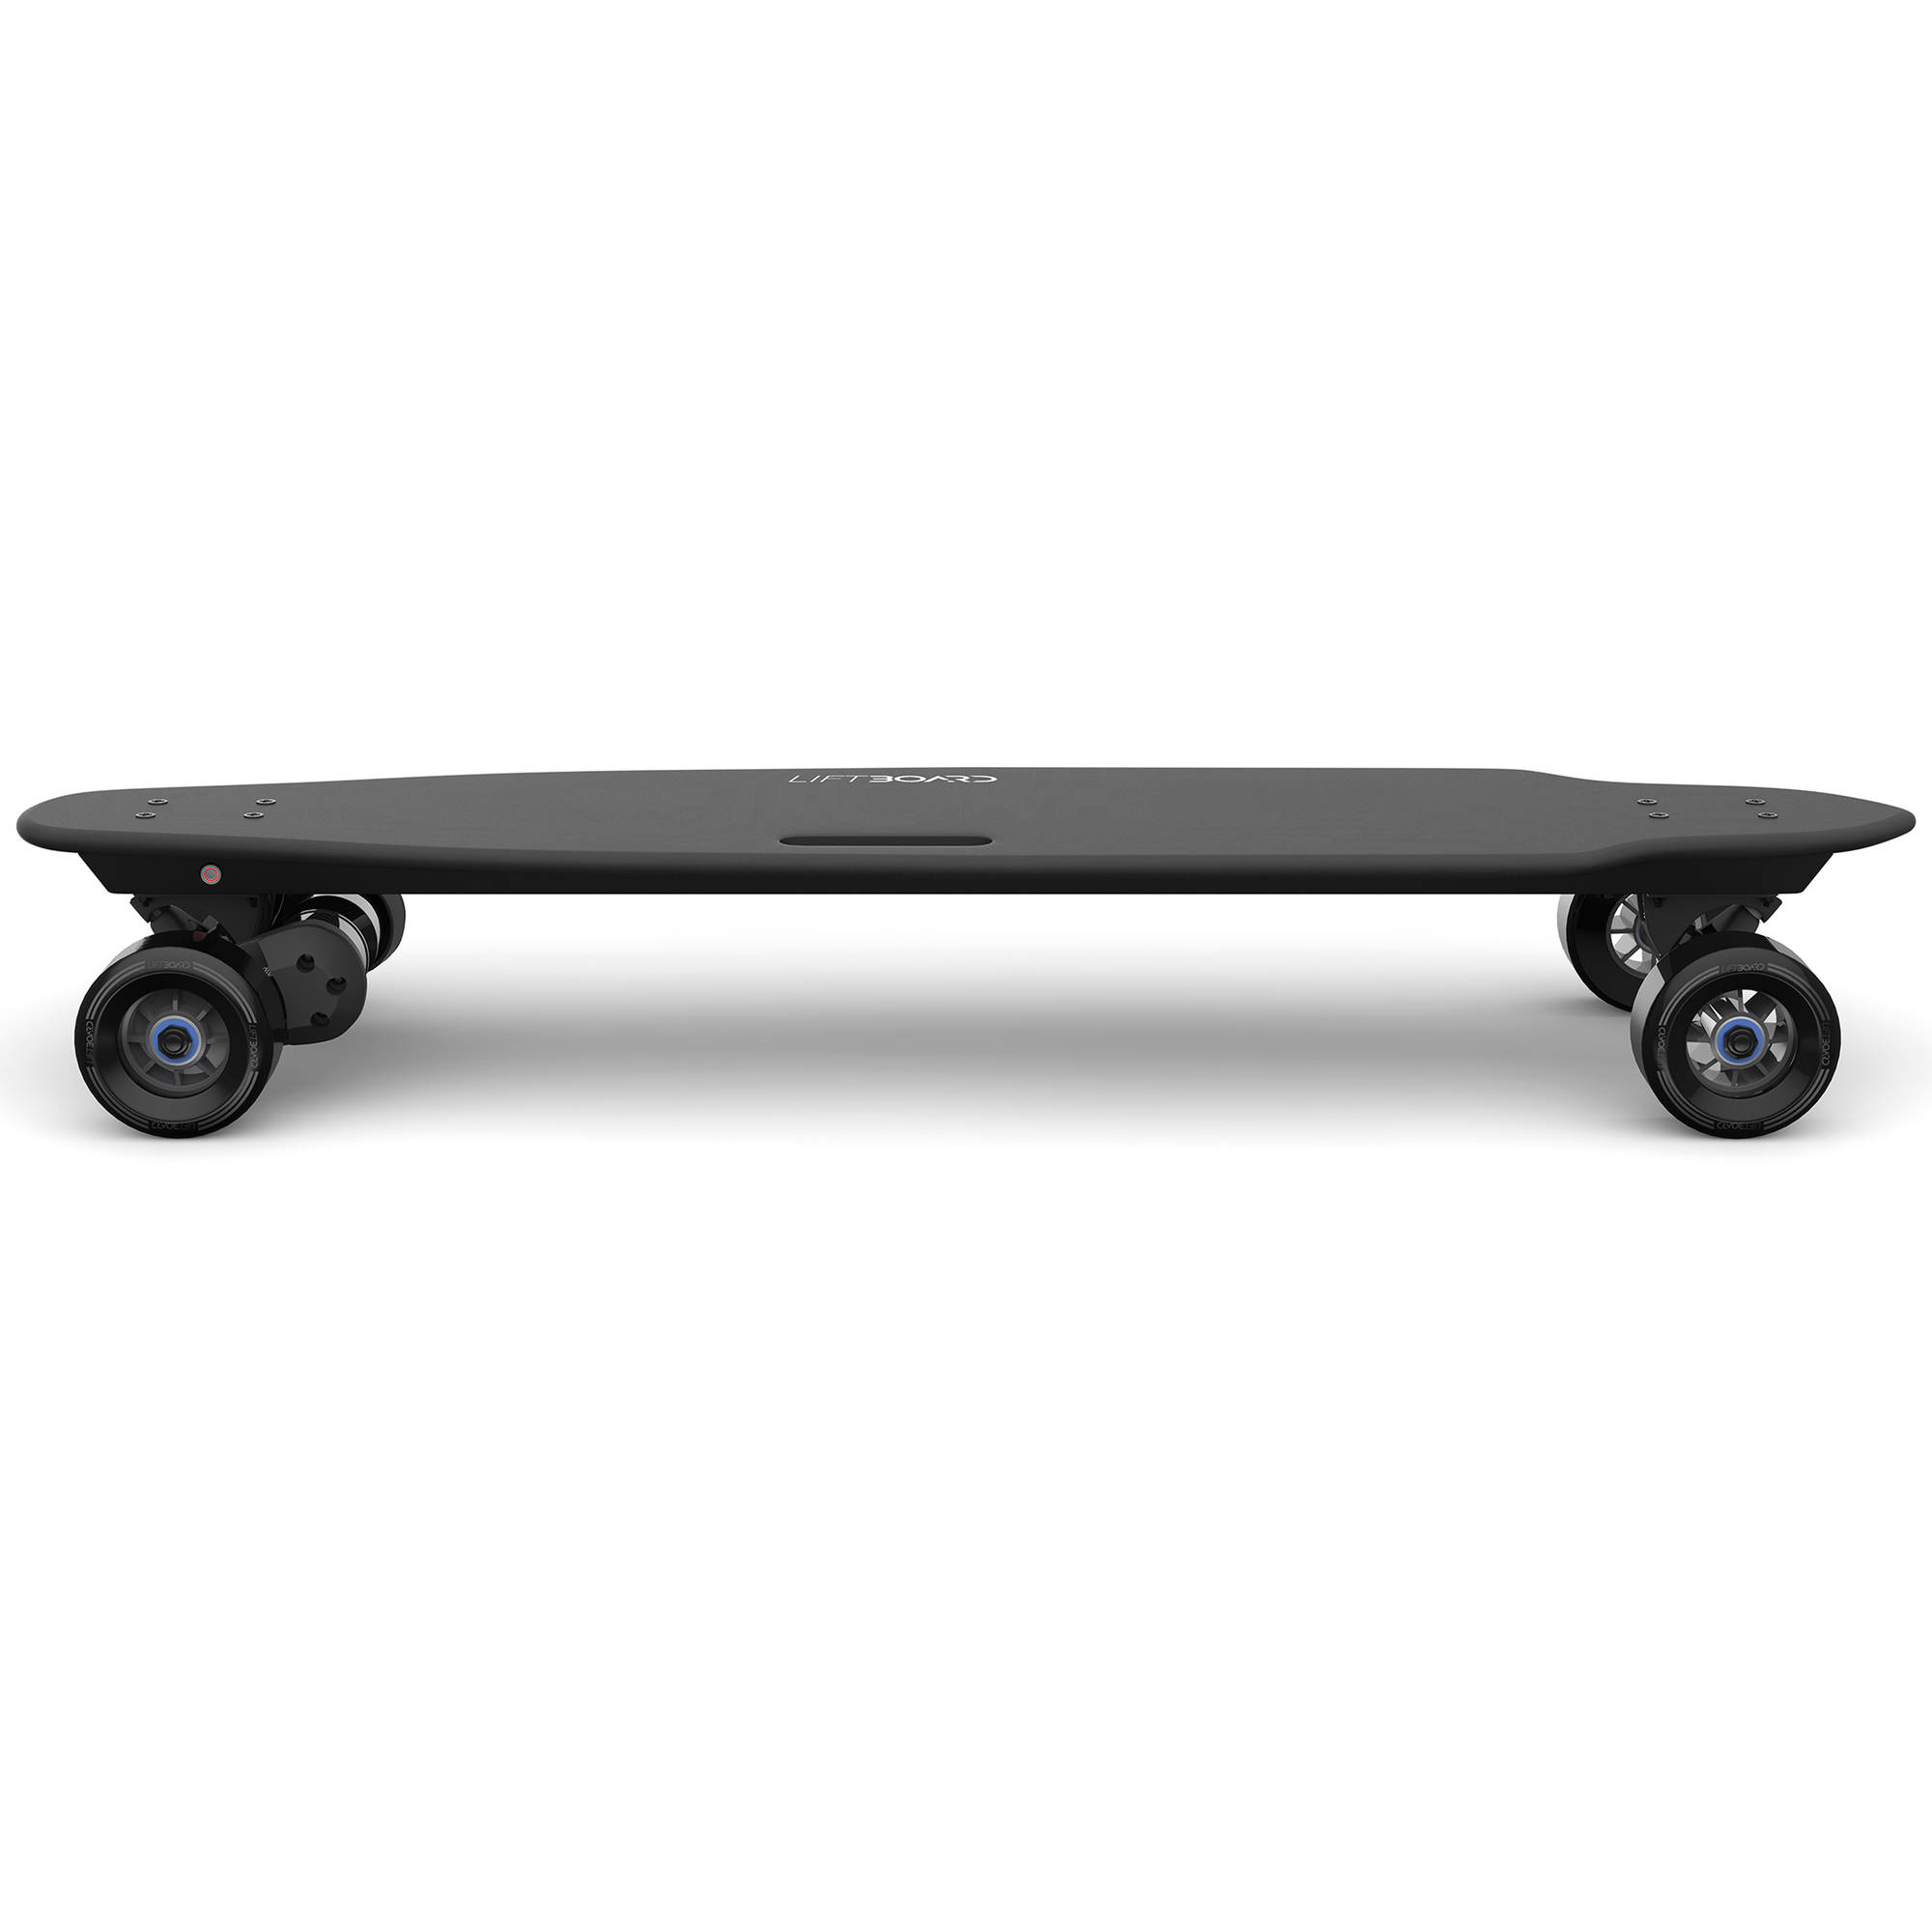 Liftboard Dual Motor UL Certified Electric Skateboard by GOBOARDS